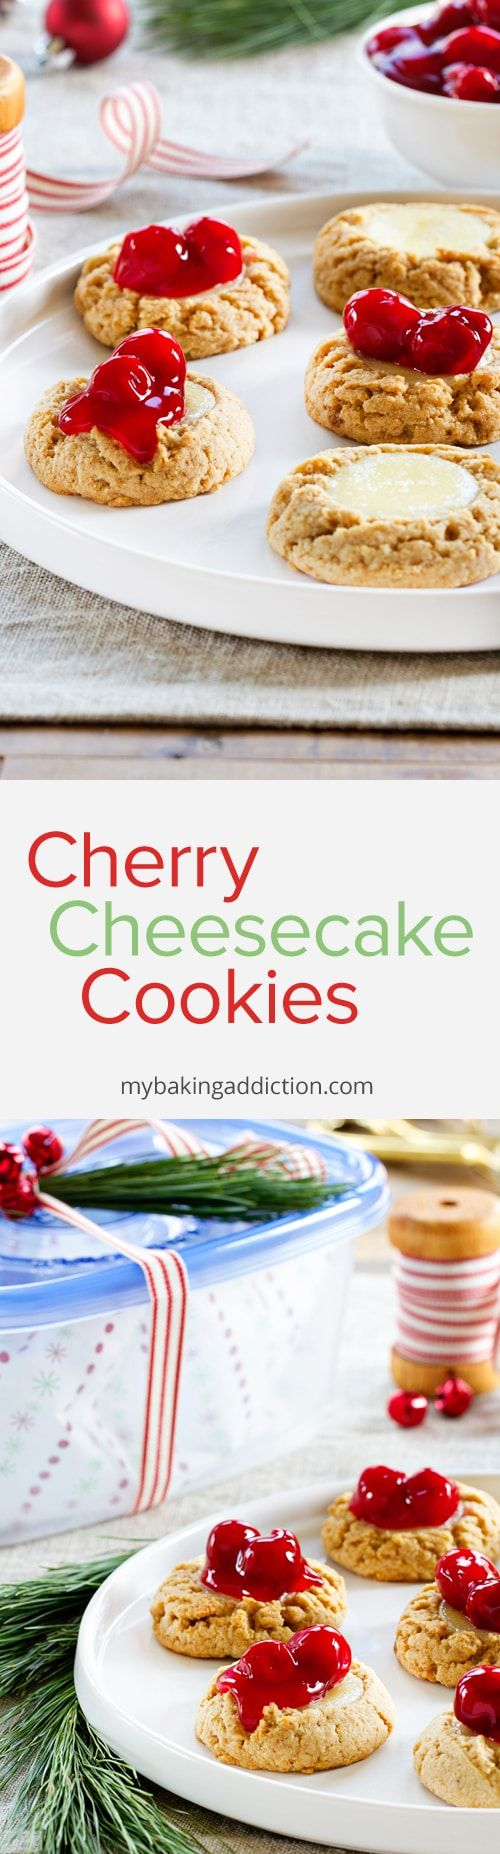 Cherry Cheesecake Cookies have all the flavors of traditional cheesecake - in cookie form. They're sure to become a new favorite!